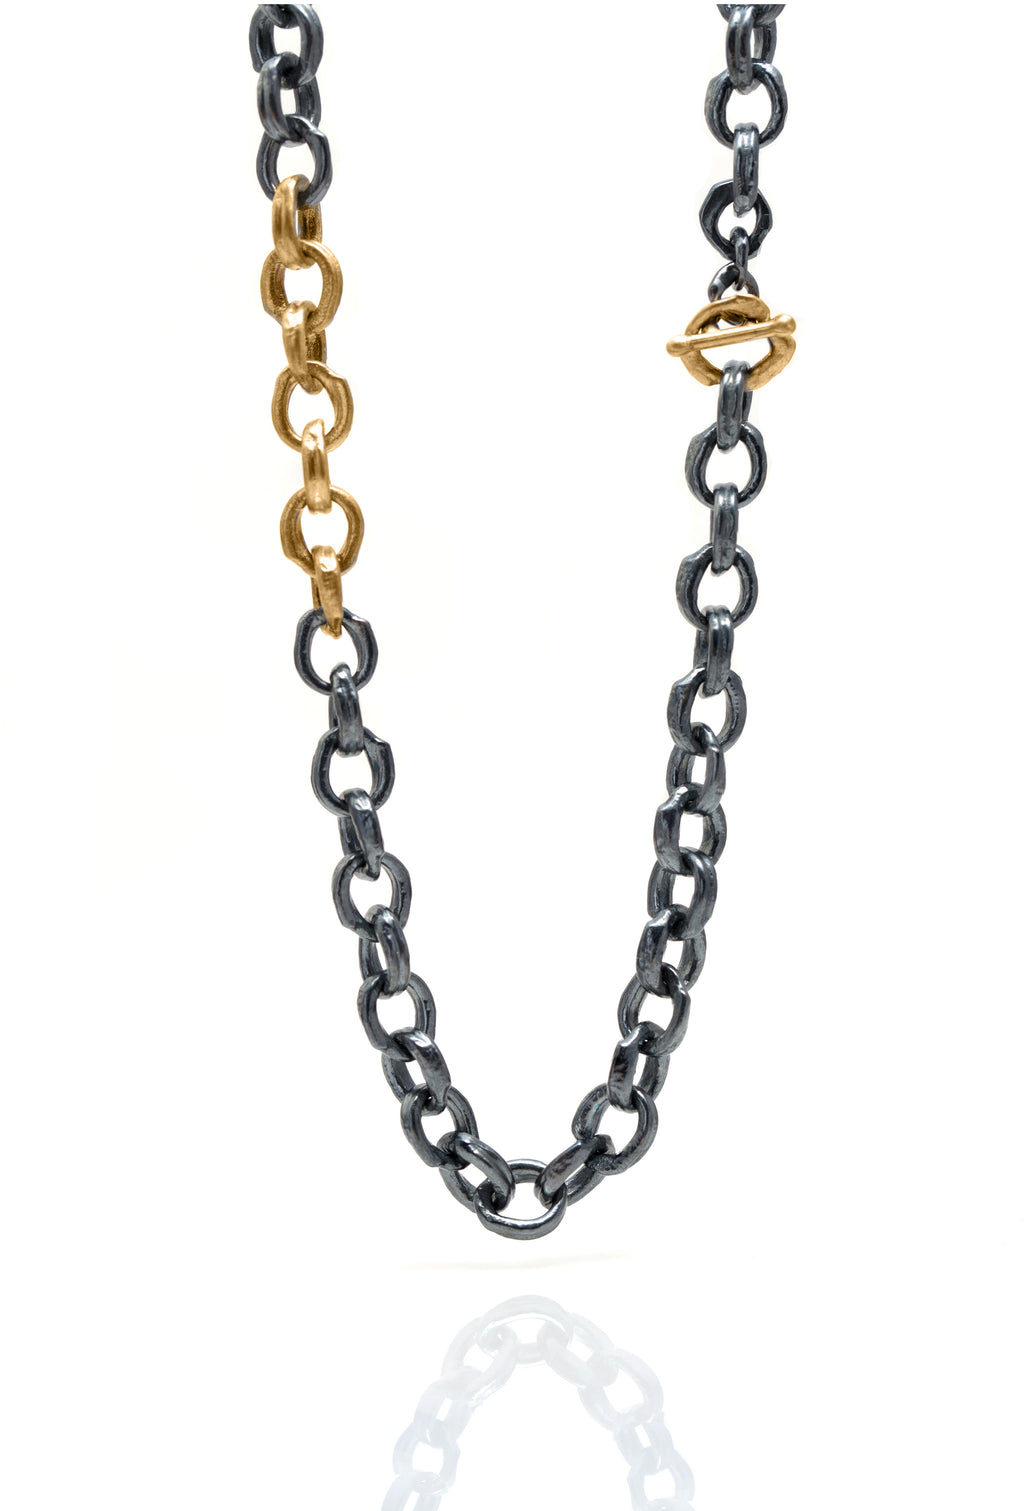 Melted Thick O Chain 14&18kYG OX